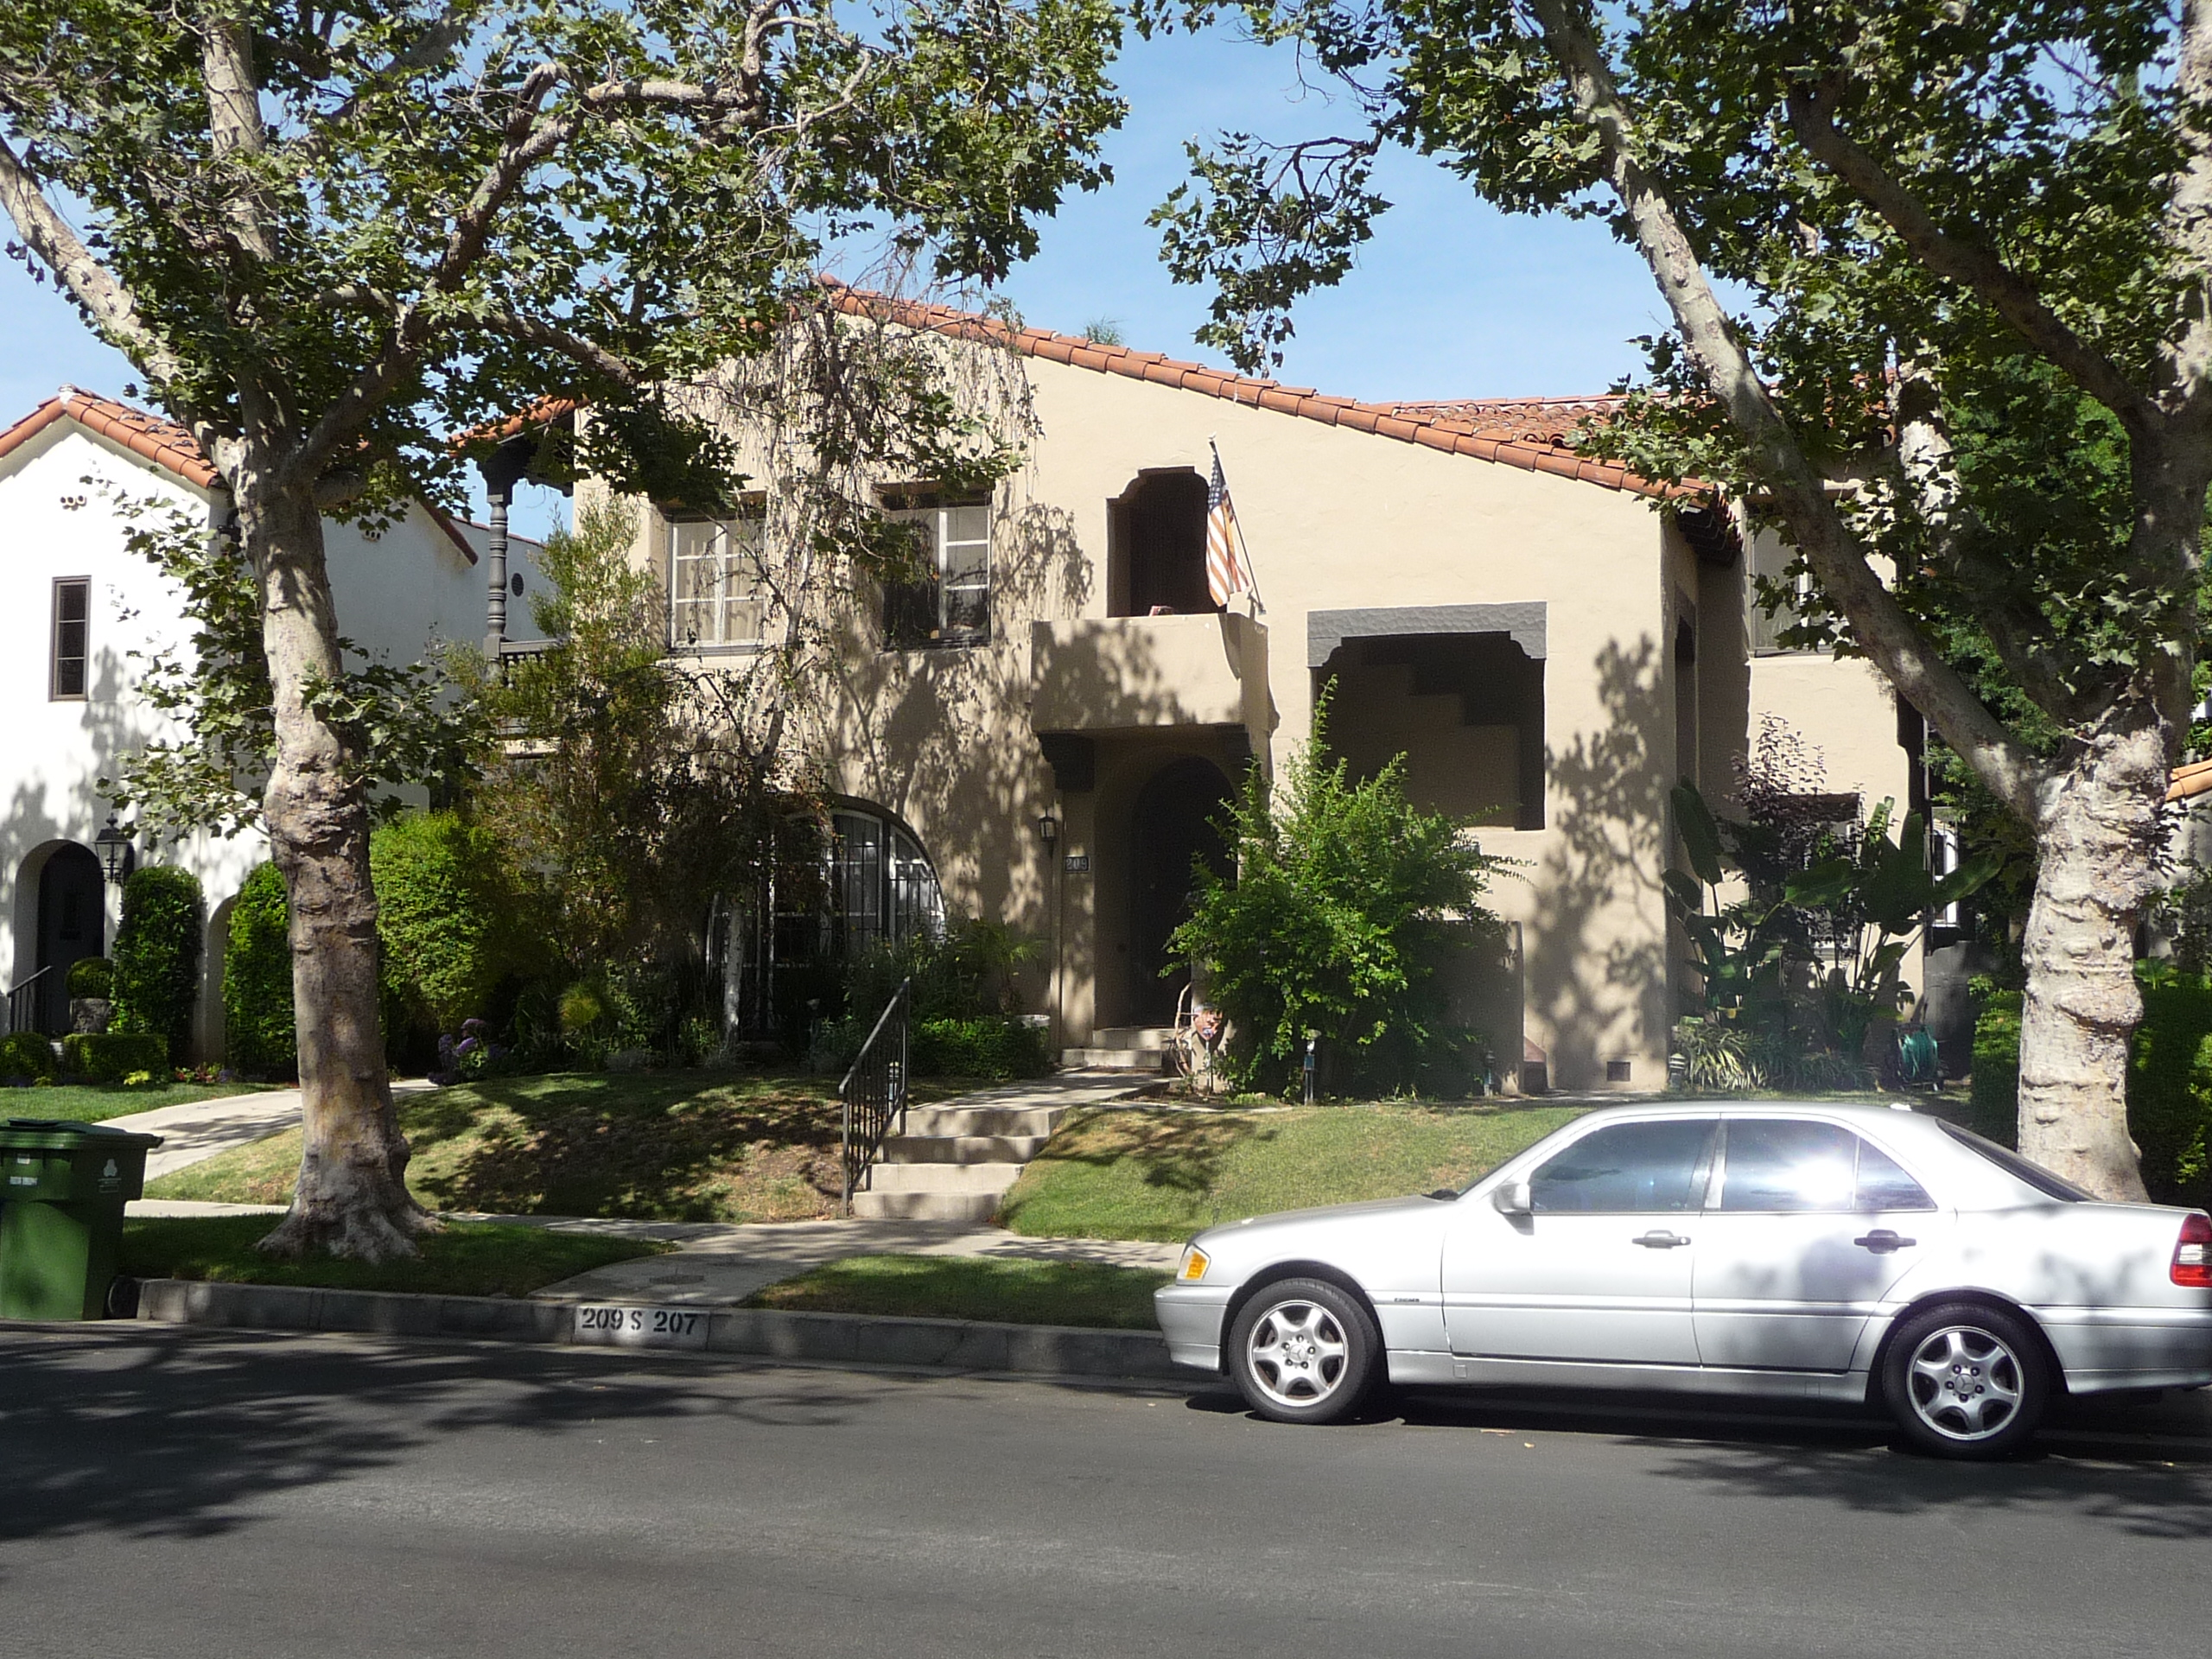 207 S MANSFIELD AVE - PHOTO